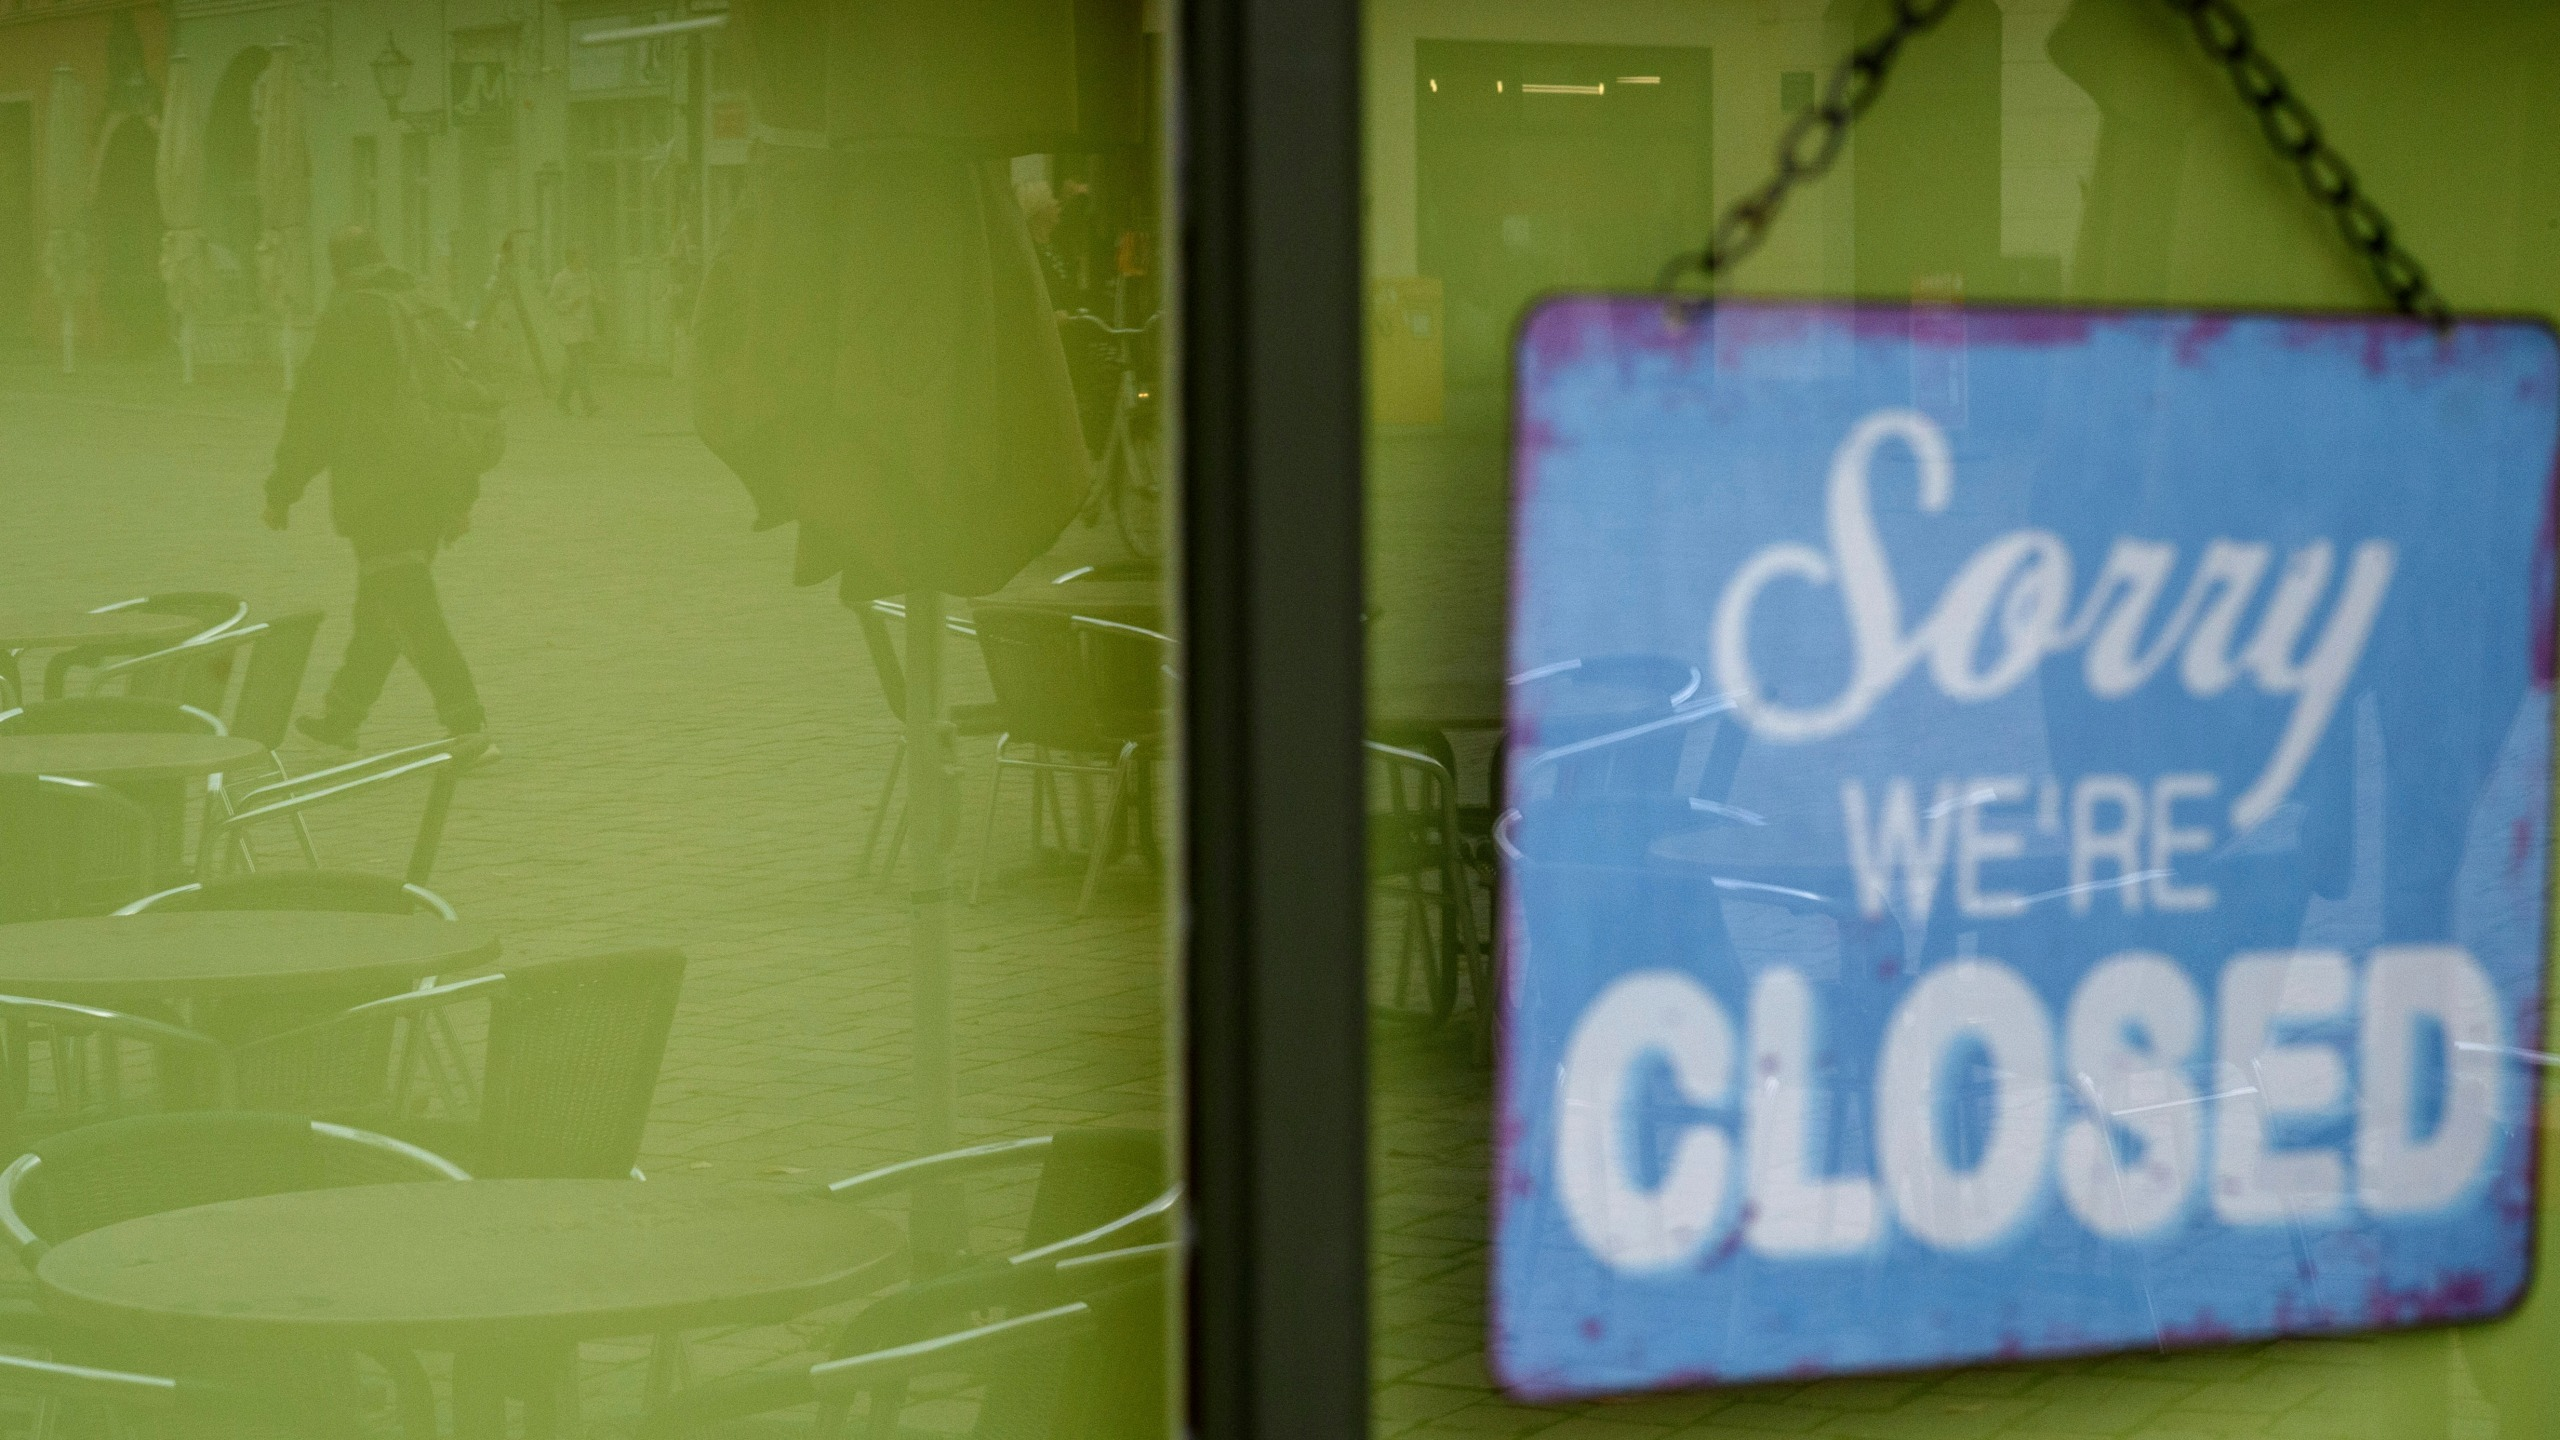 """Sorry we're closed"" is written on a sign hanging on the door of a coffee shop where the unoccupied tables and chairs are reflected in the glass pane in Germany in November 2020."